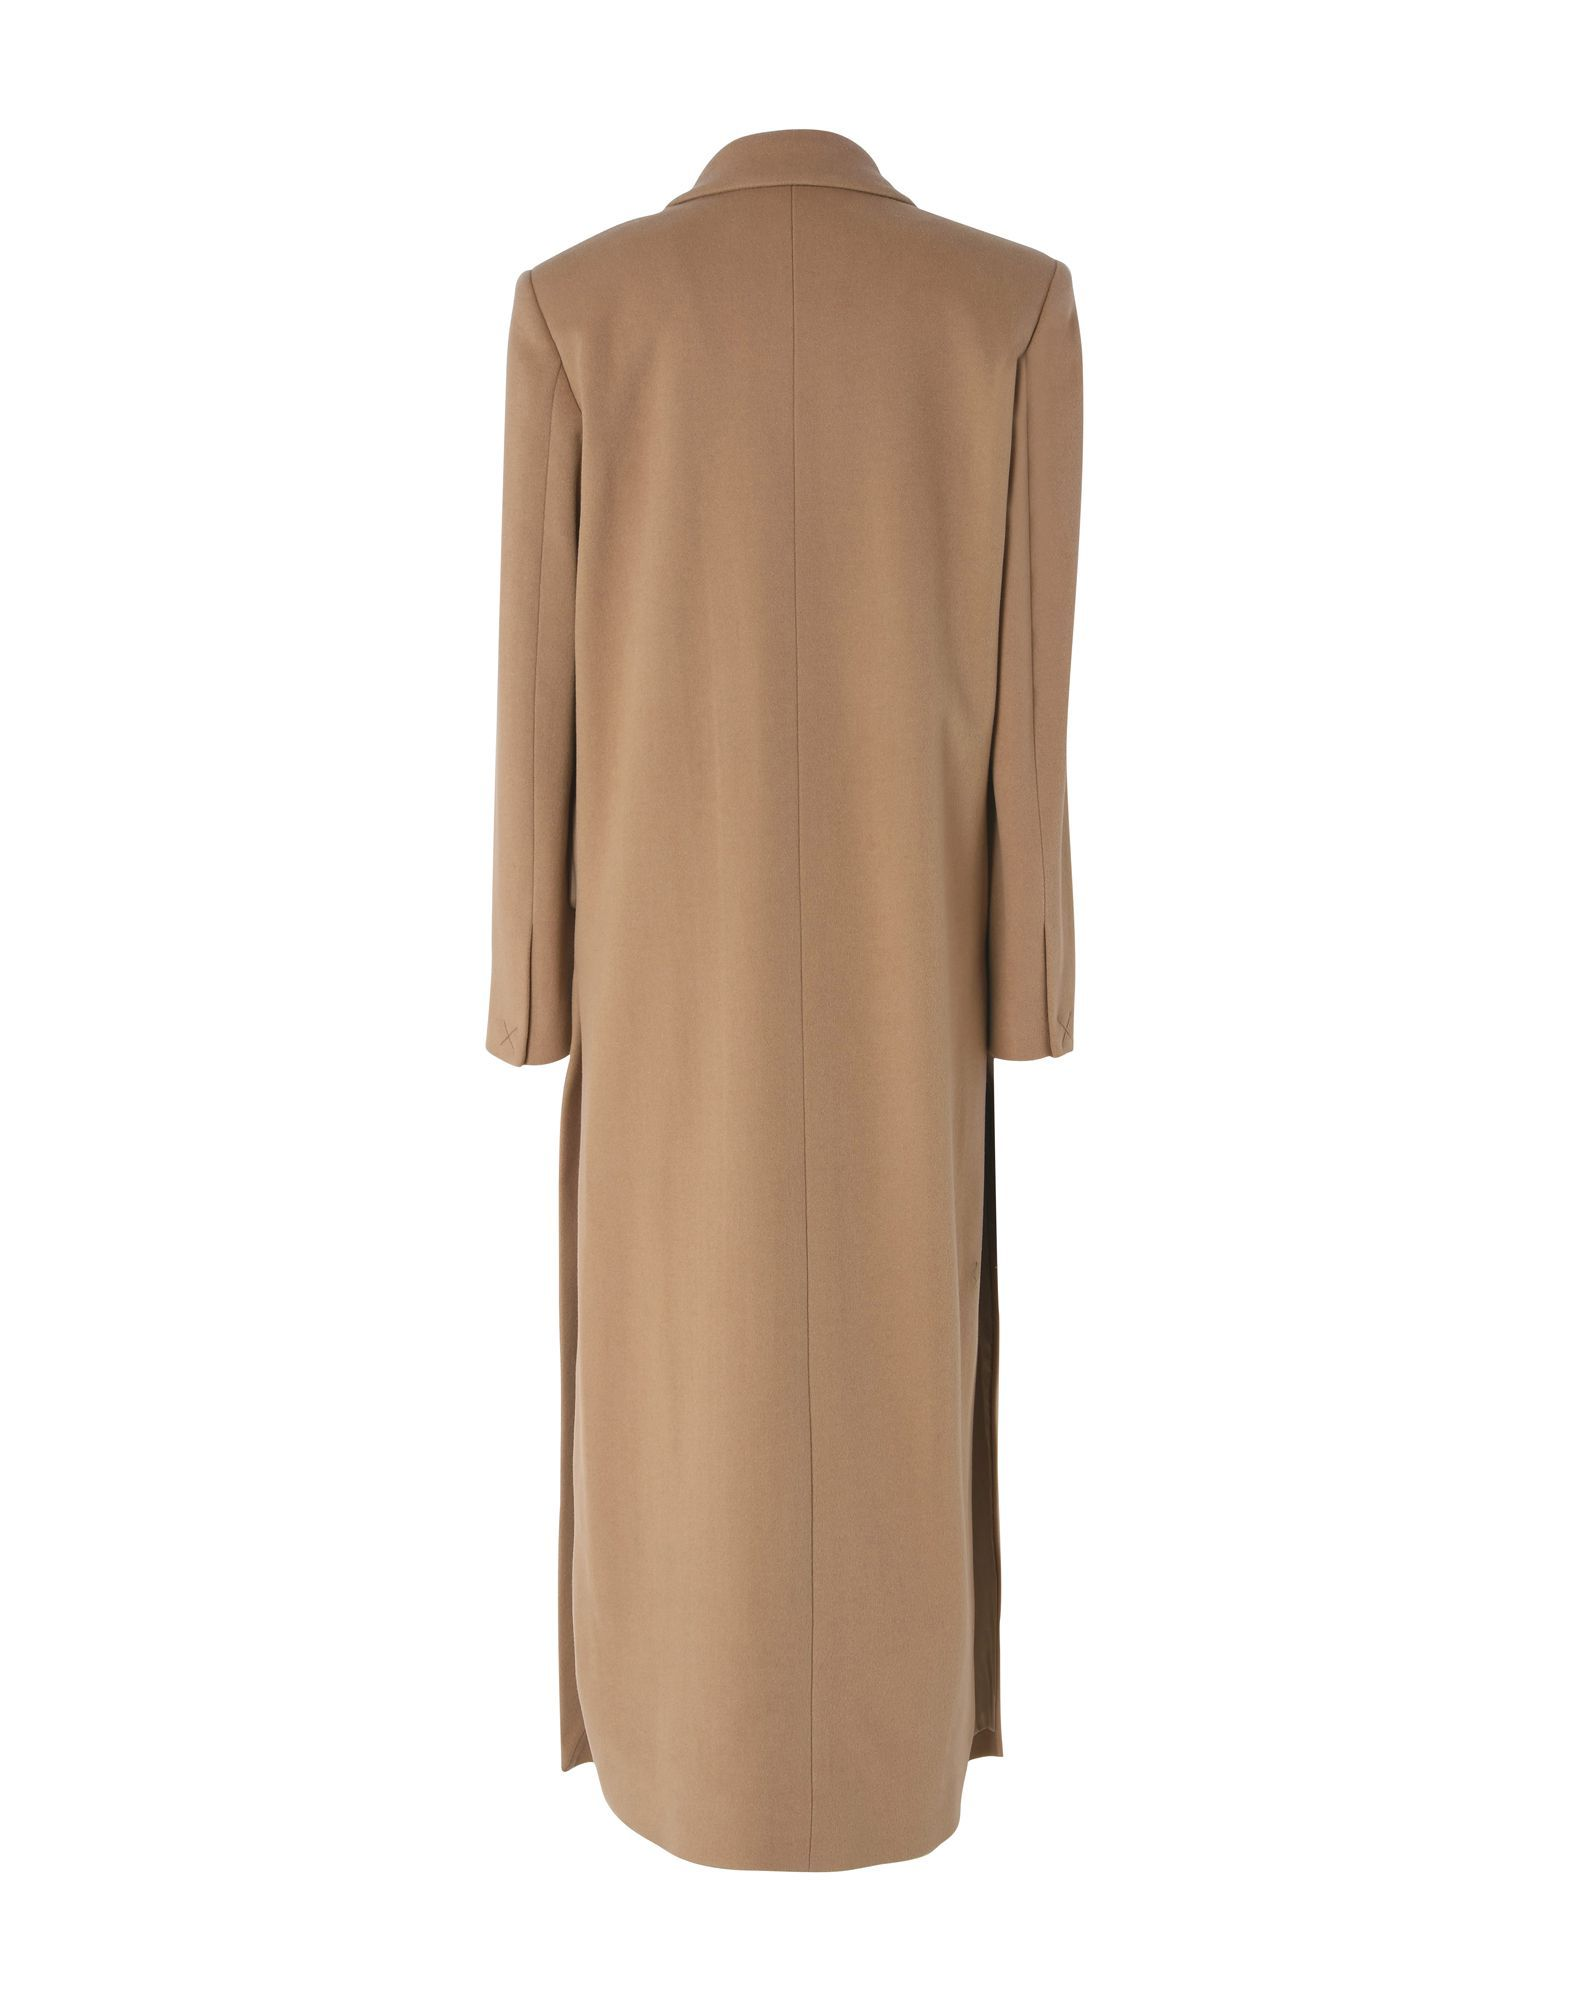 Mauro Grifoni Beige Wool Double Breasted Full Length Overcoat